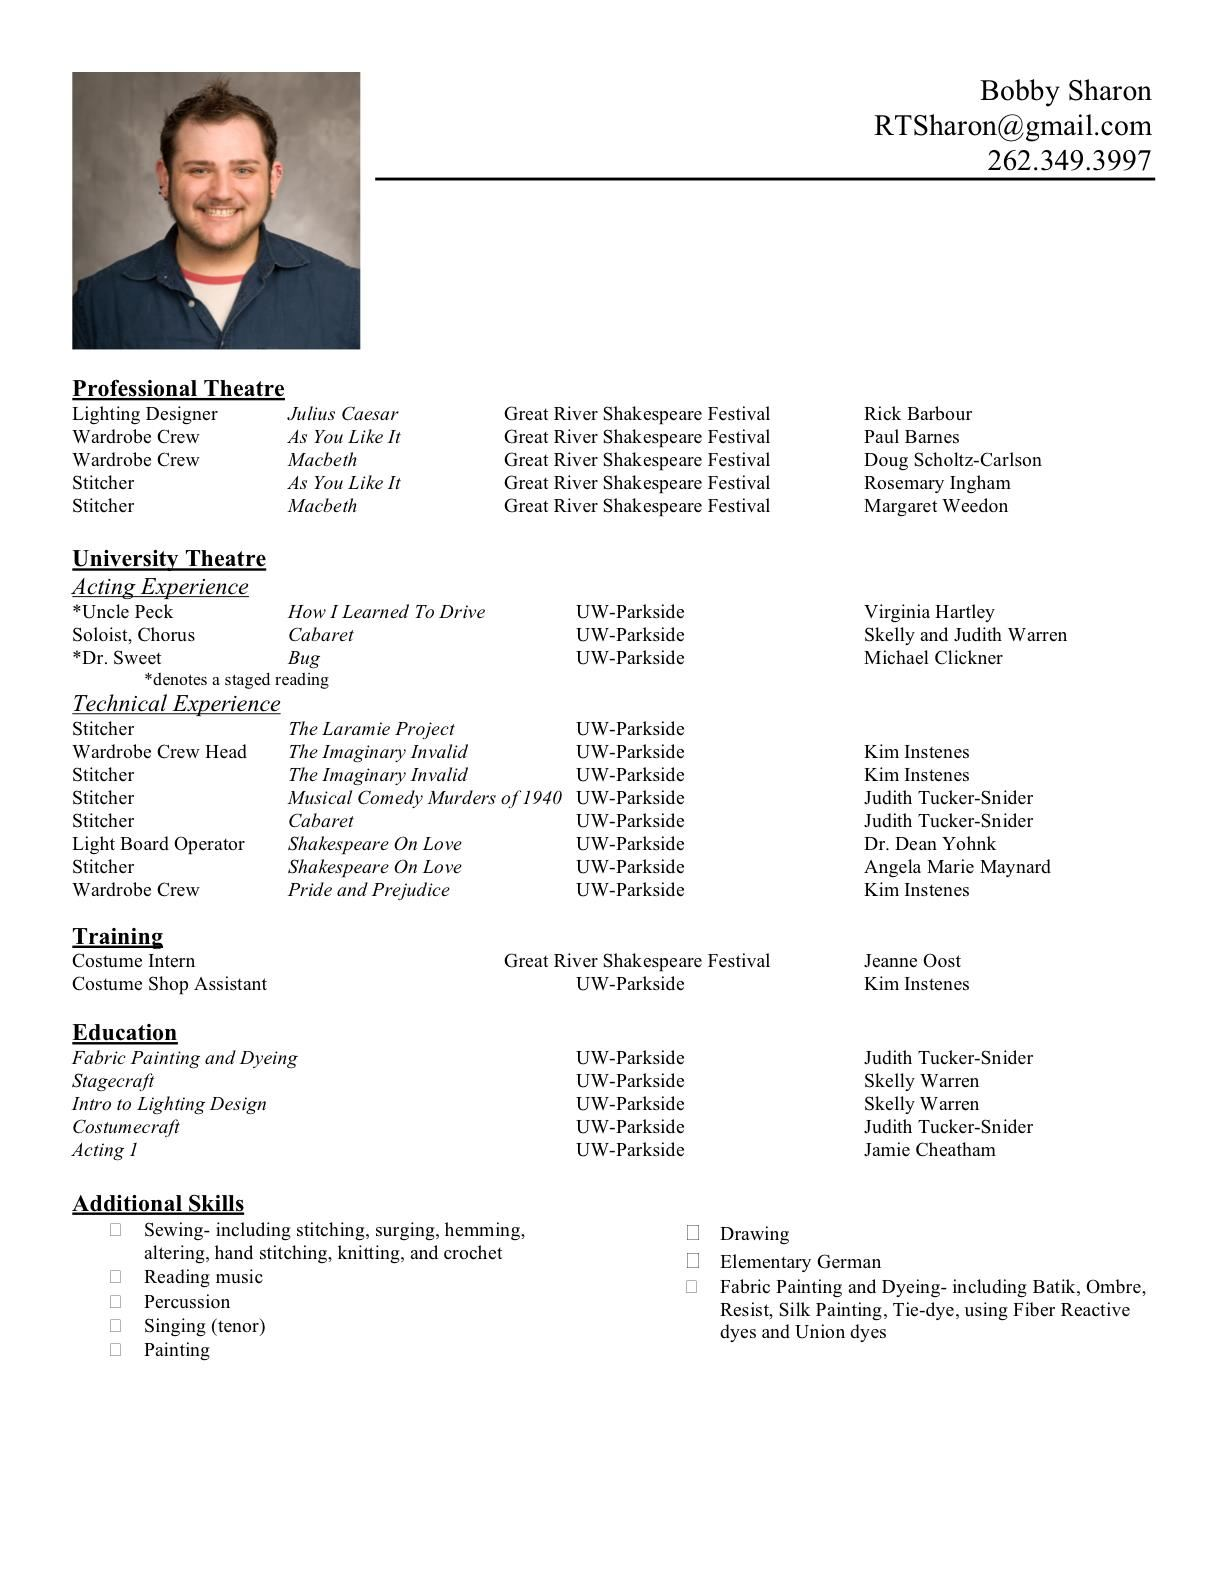 formats of a resume | Template